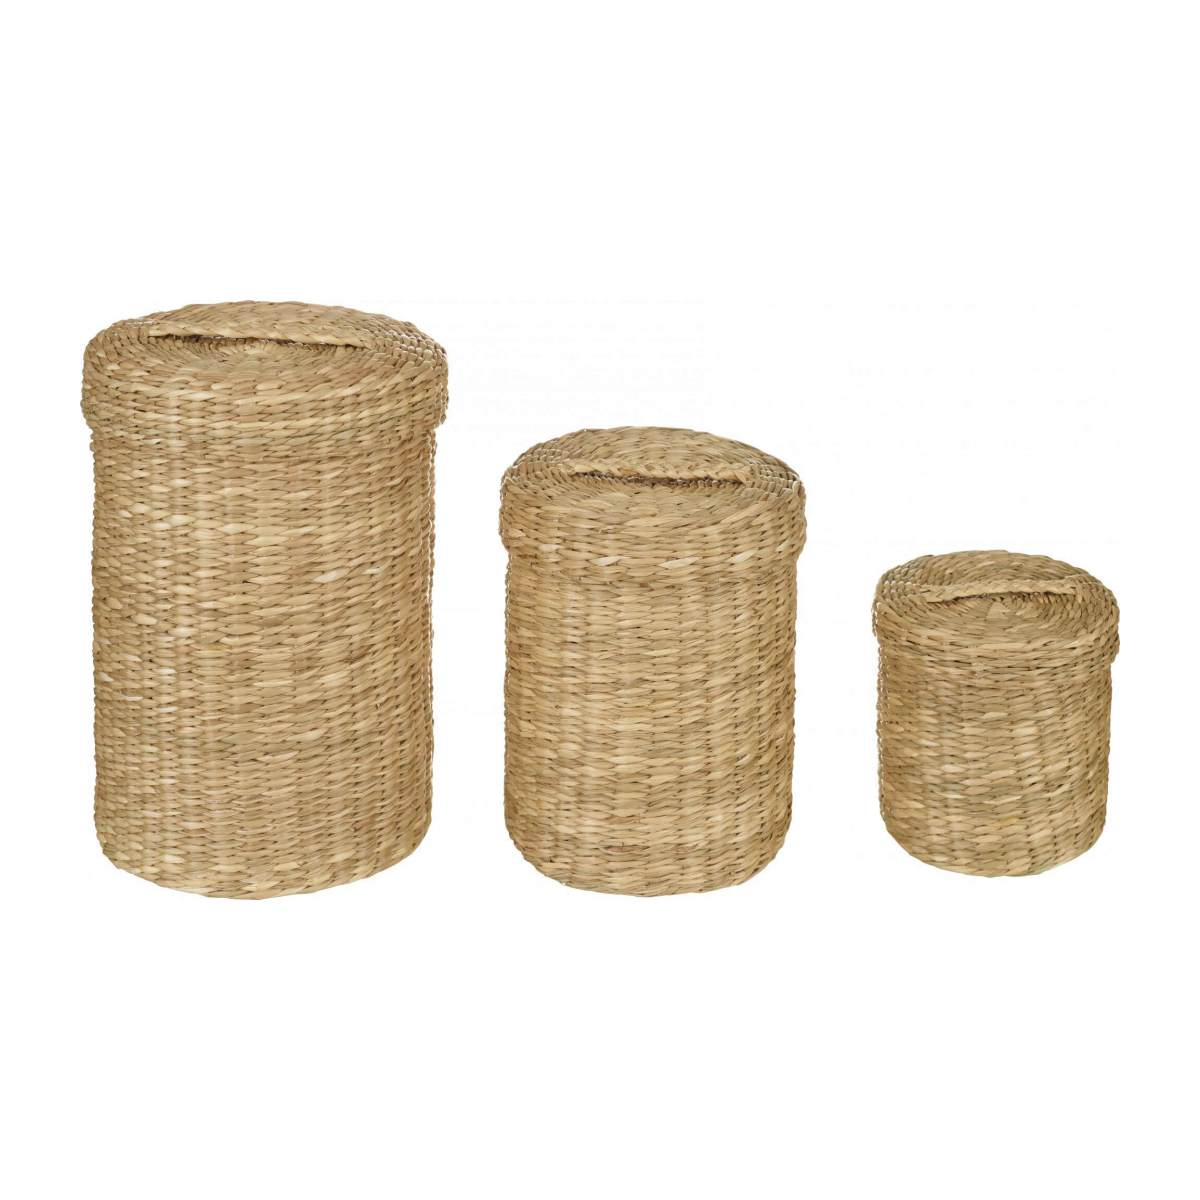 Seagrass Mini Baskets with lids n°4